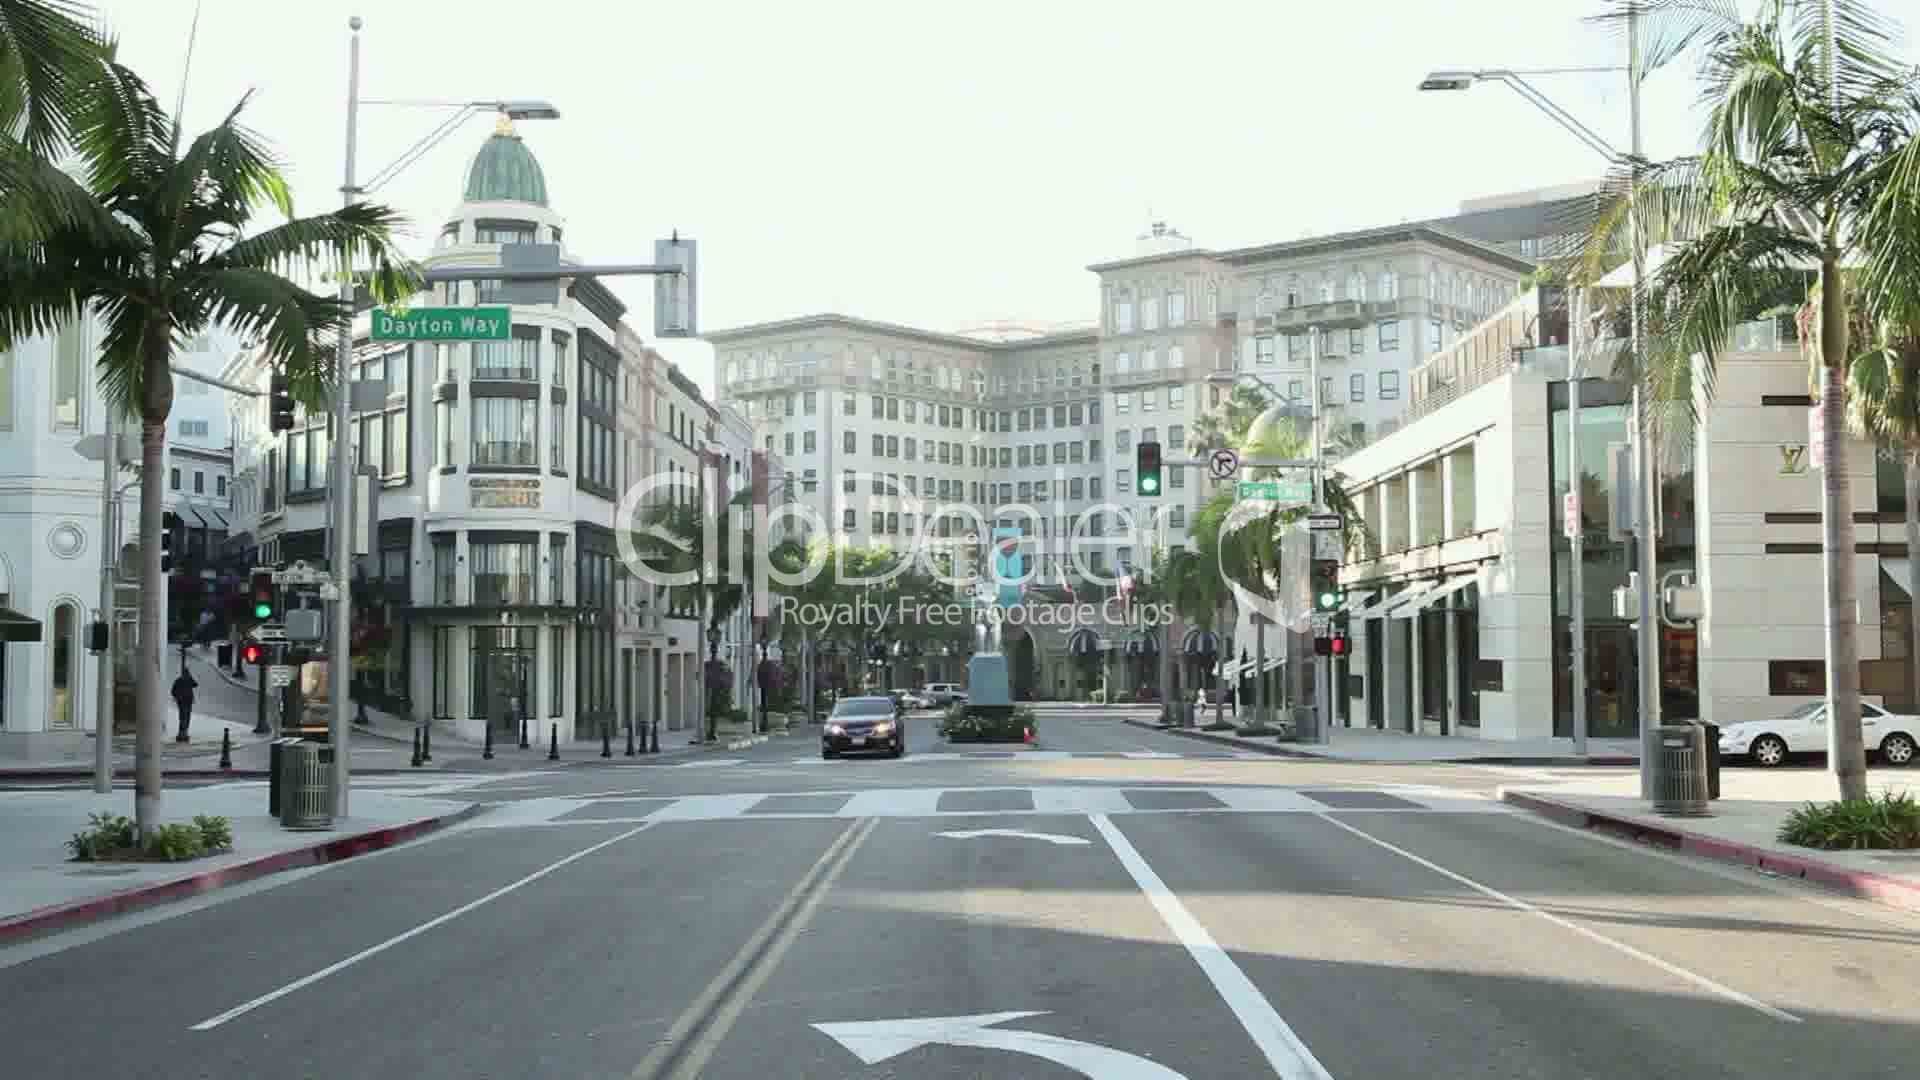 Rodeo Drive Californien USA Royalty Free Video And Stock Footage